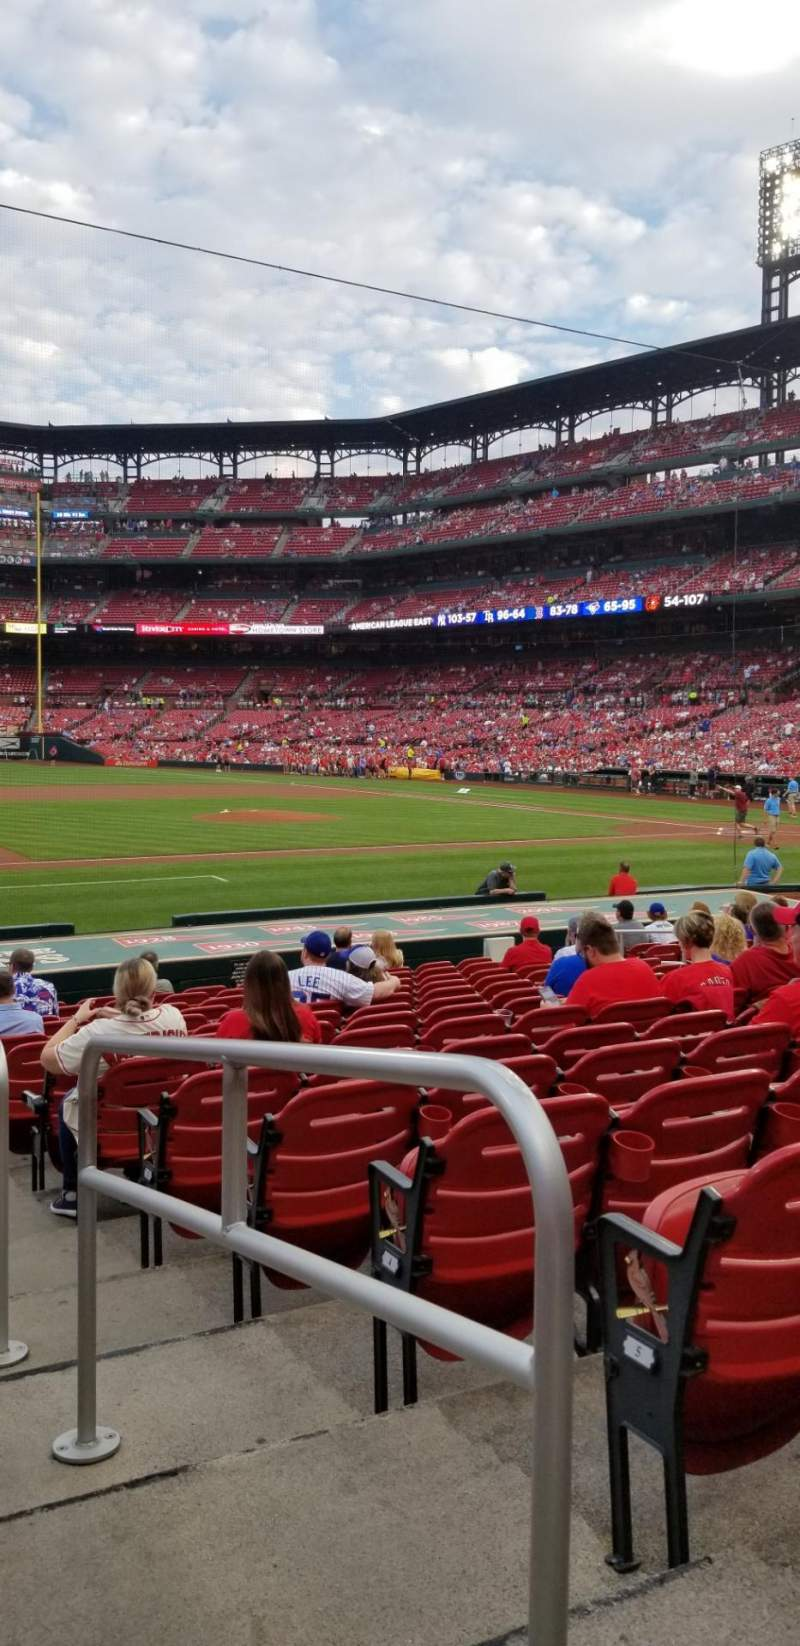 Seating view for Busch Stadium Section 158 Row 7 Seat 1